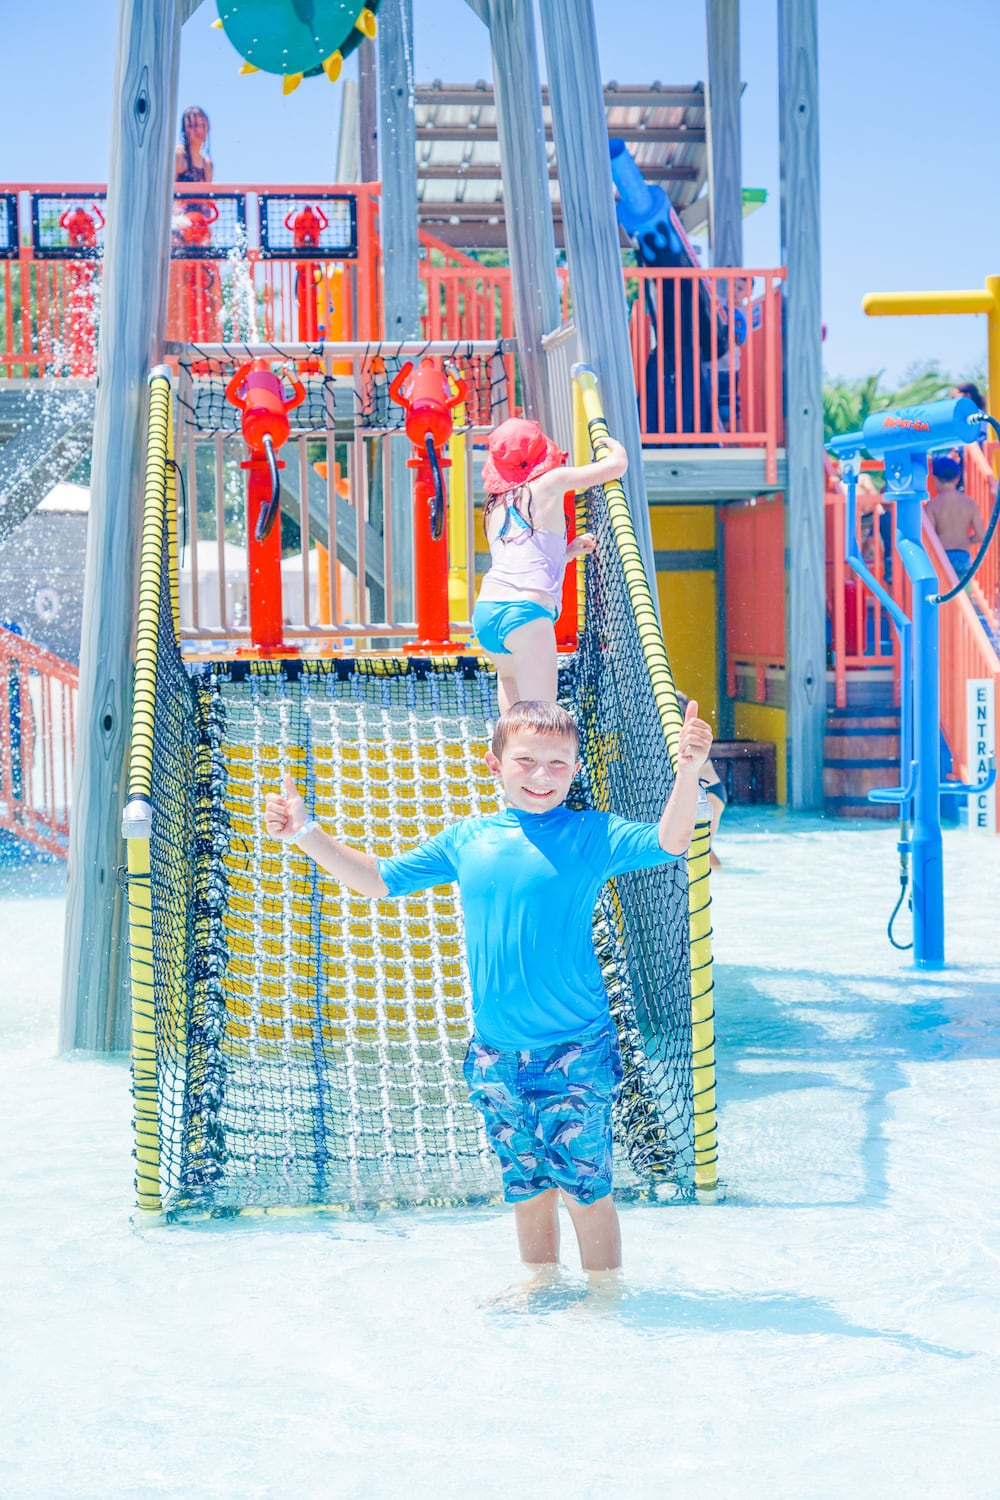 A boy in a blue swim suit standing inside the Jellystone Park water playground.